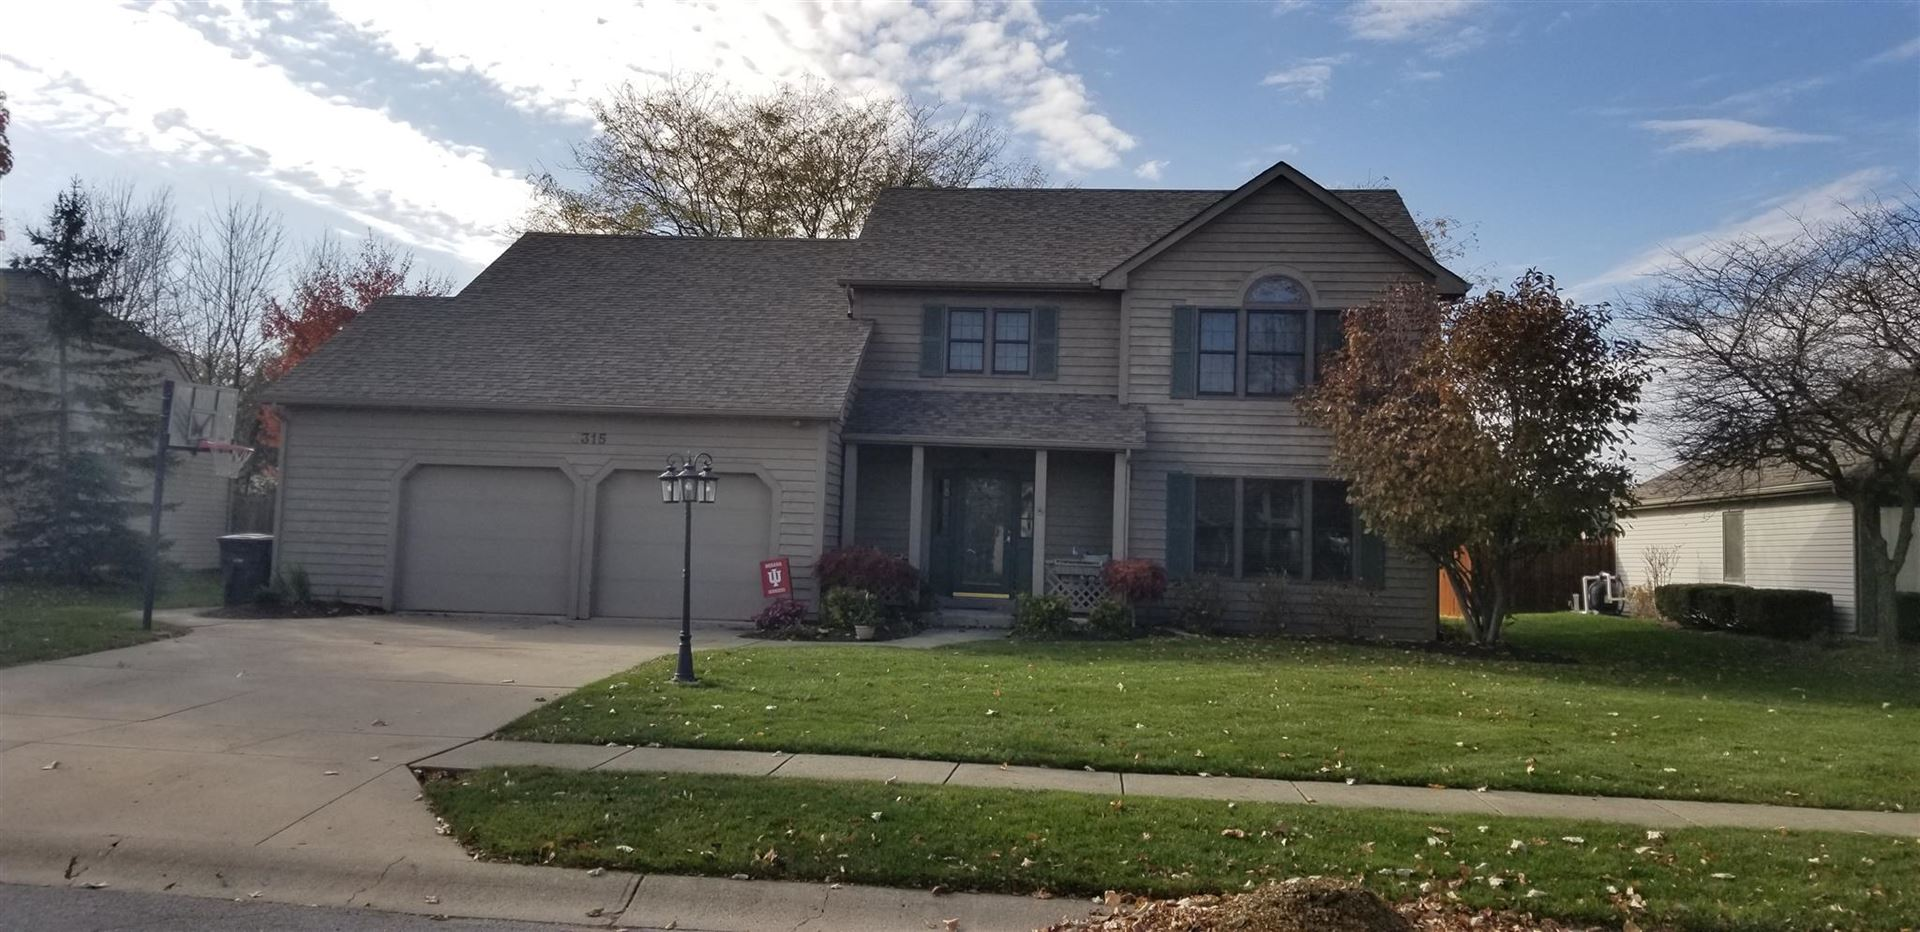 8315 Hunters knoll Place Place, Fort Wayne, IN 46825 - #: 201950476